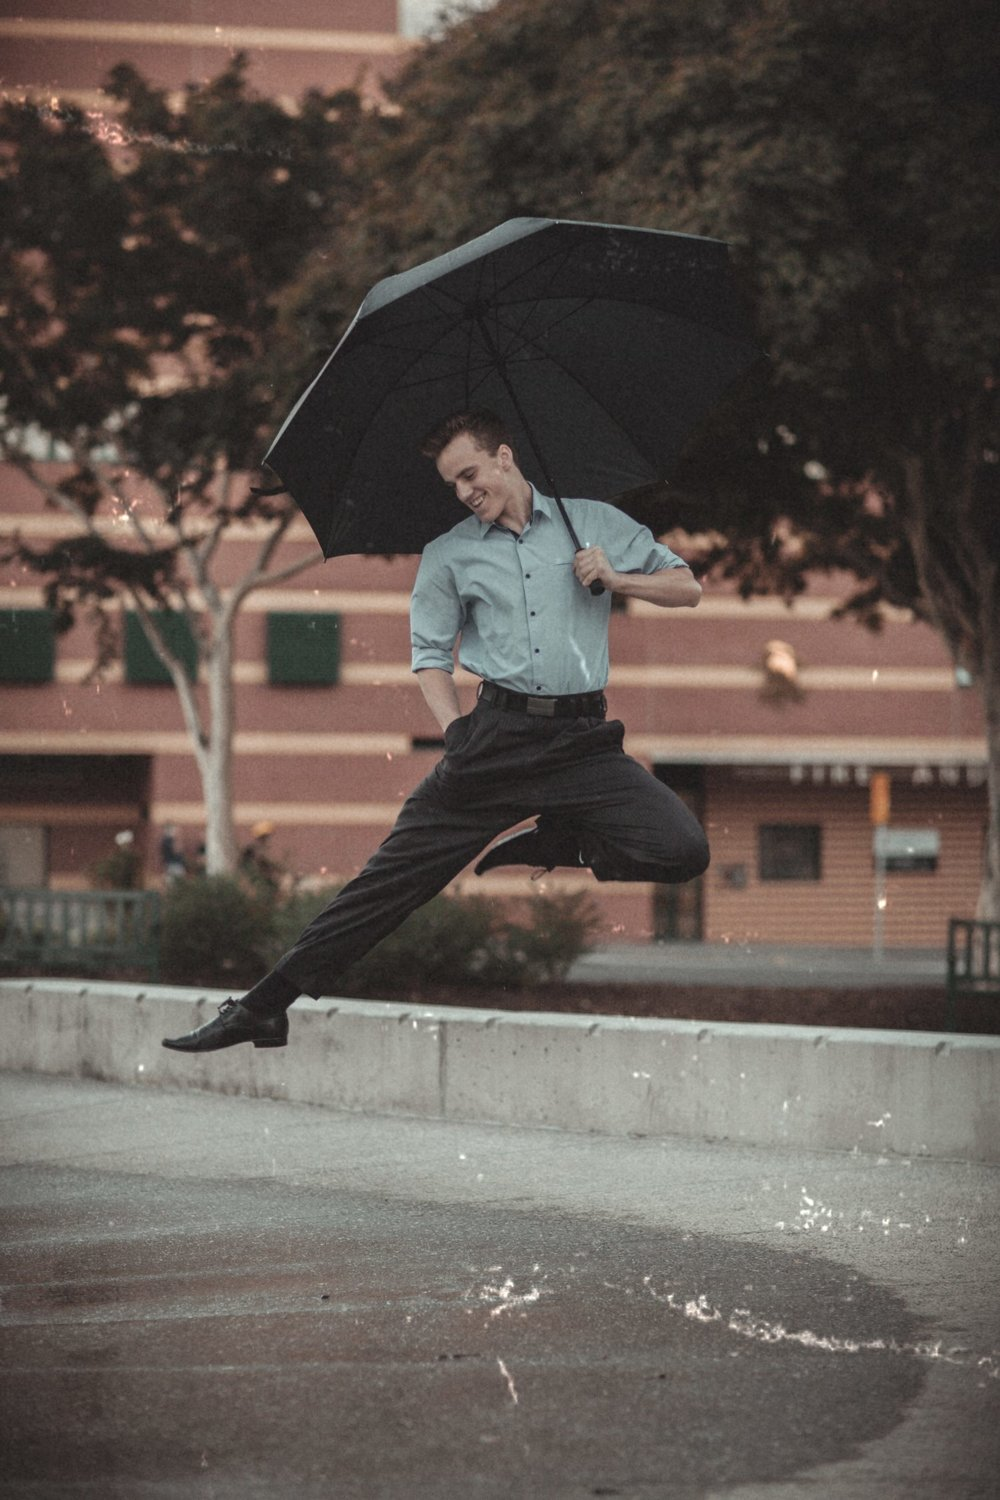 You feel different? This man does, too. Look at him jumping in the air with an umbrella.